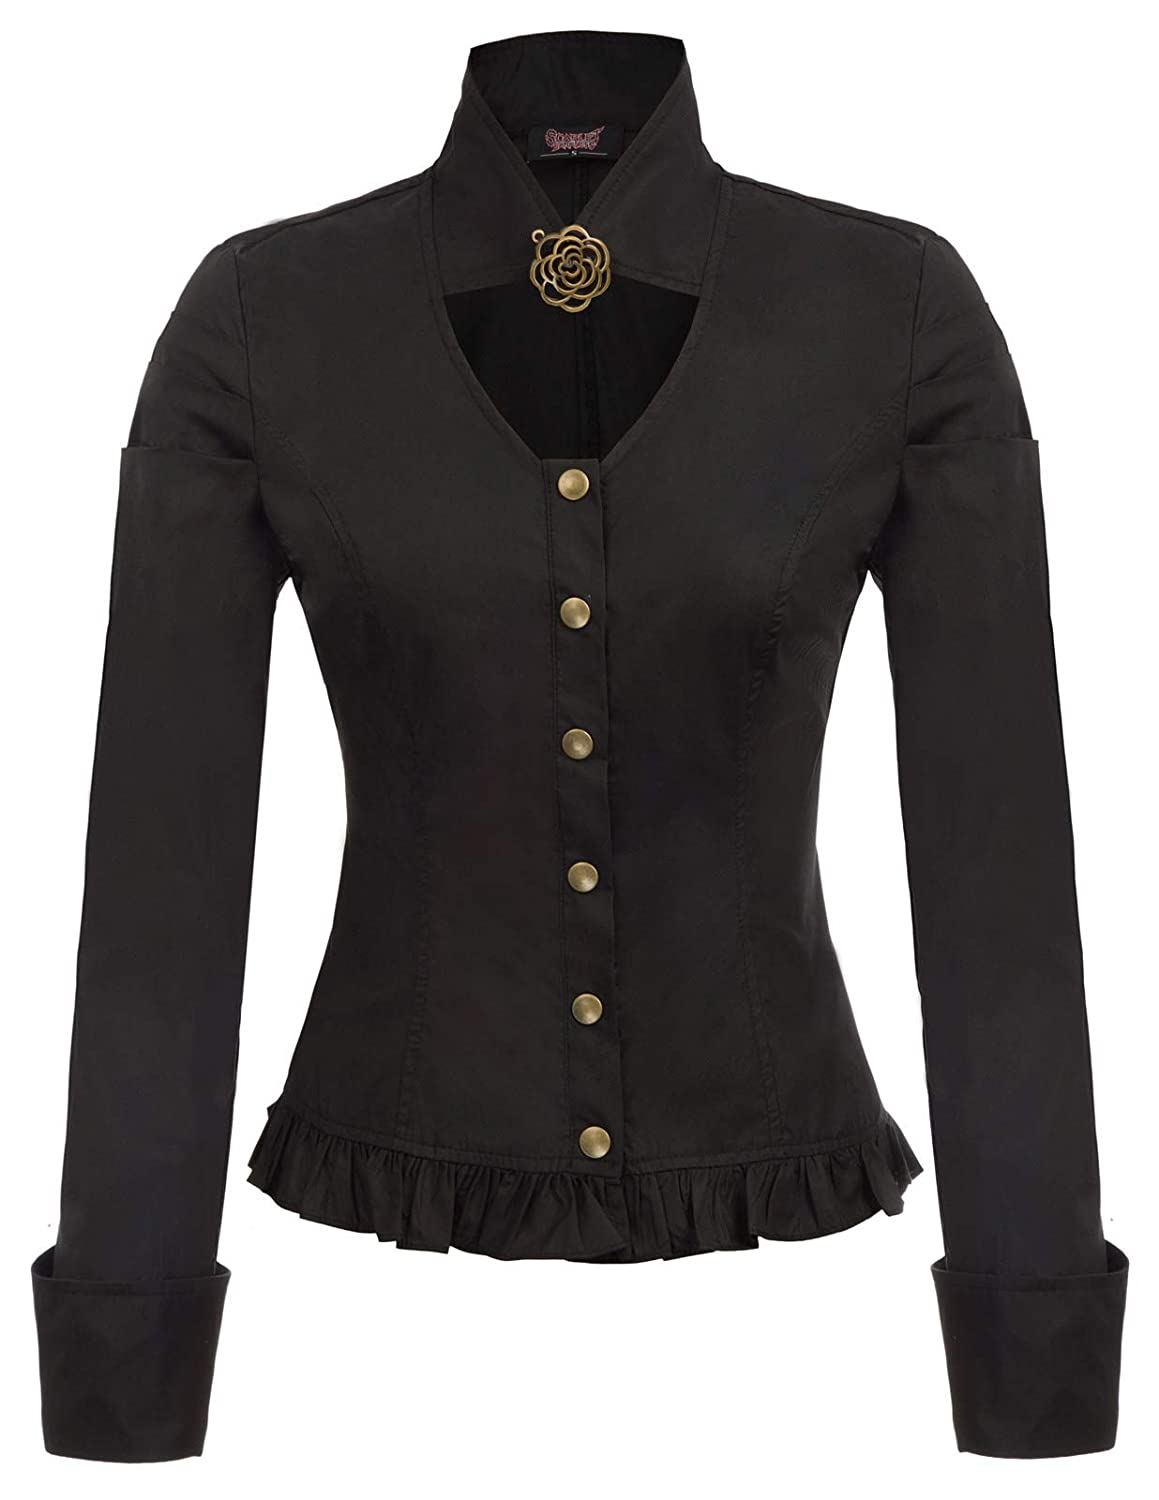 Victorian Blouses, Tops, Shirts, Sweaters Women Steampunk Victorian Tops Stand Collar Button Placket Brooch Blouse S-2XL $27.99 AT vintagedancer.com